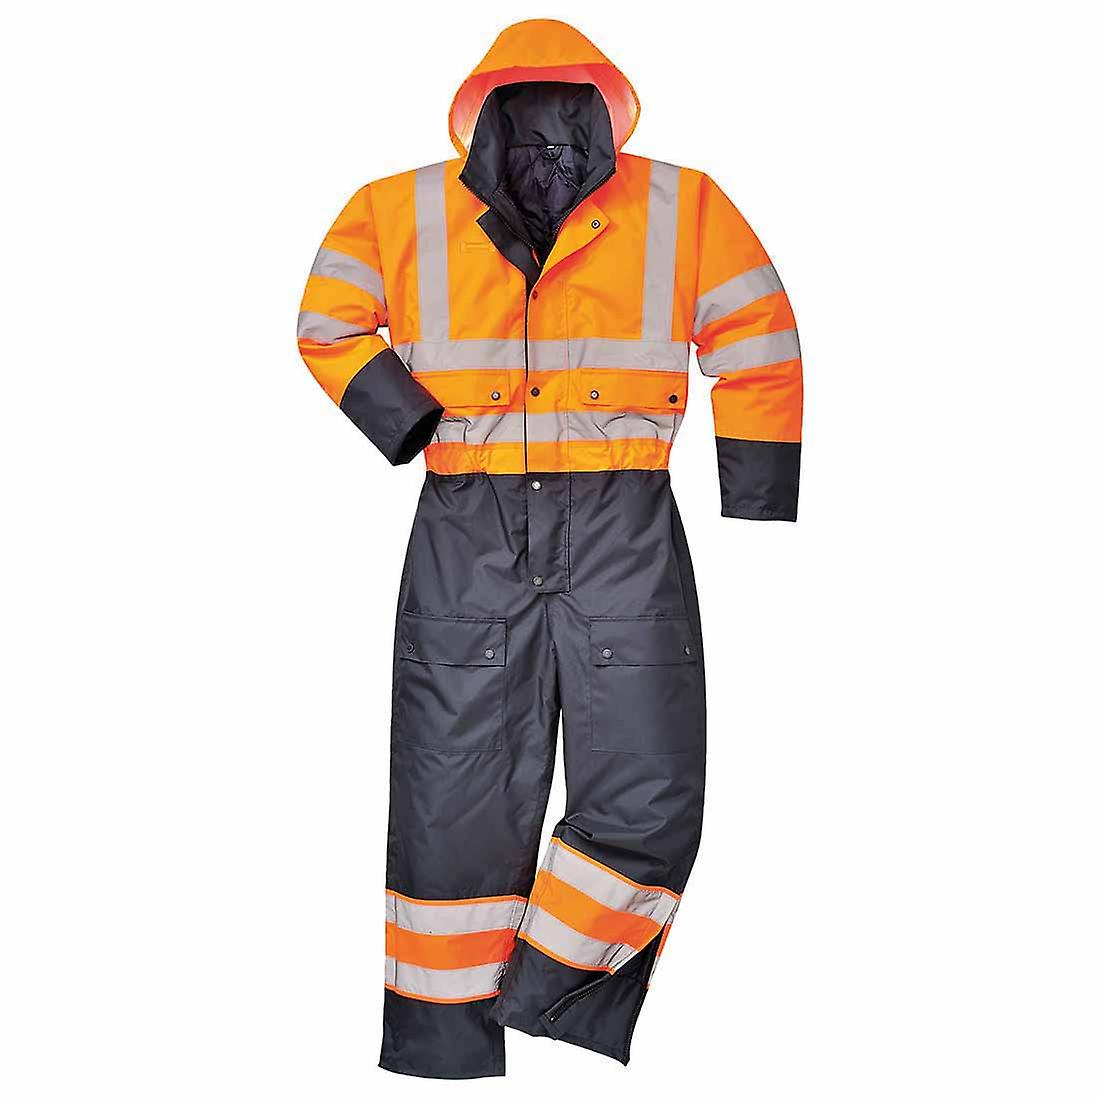 sUw - Hi-Vis Safety Workwear Contrast Coverall Boilersuit With Hood